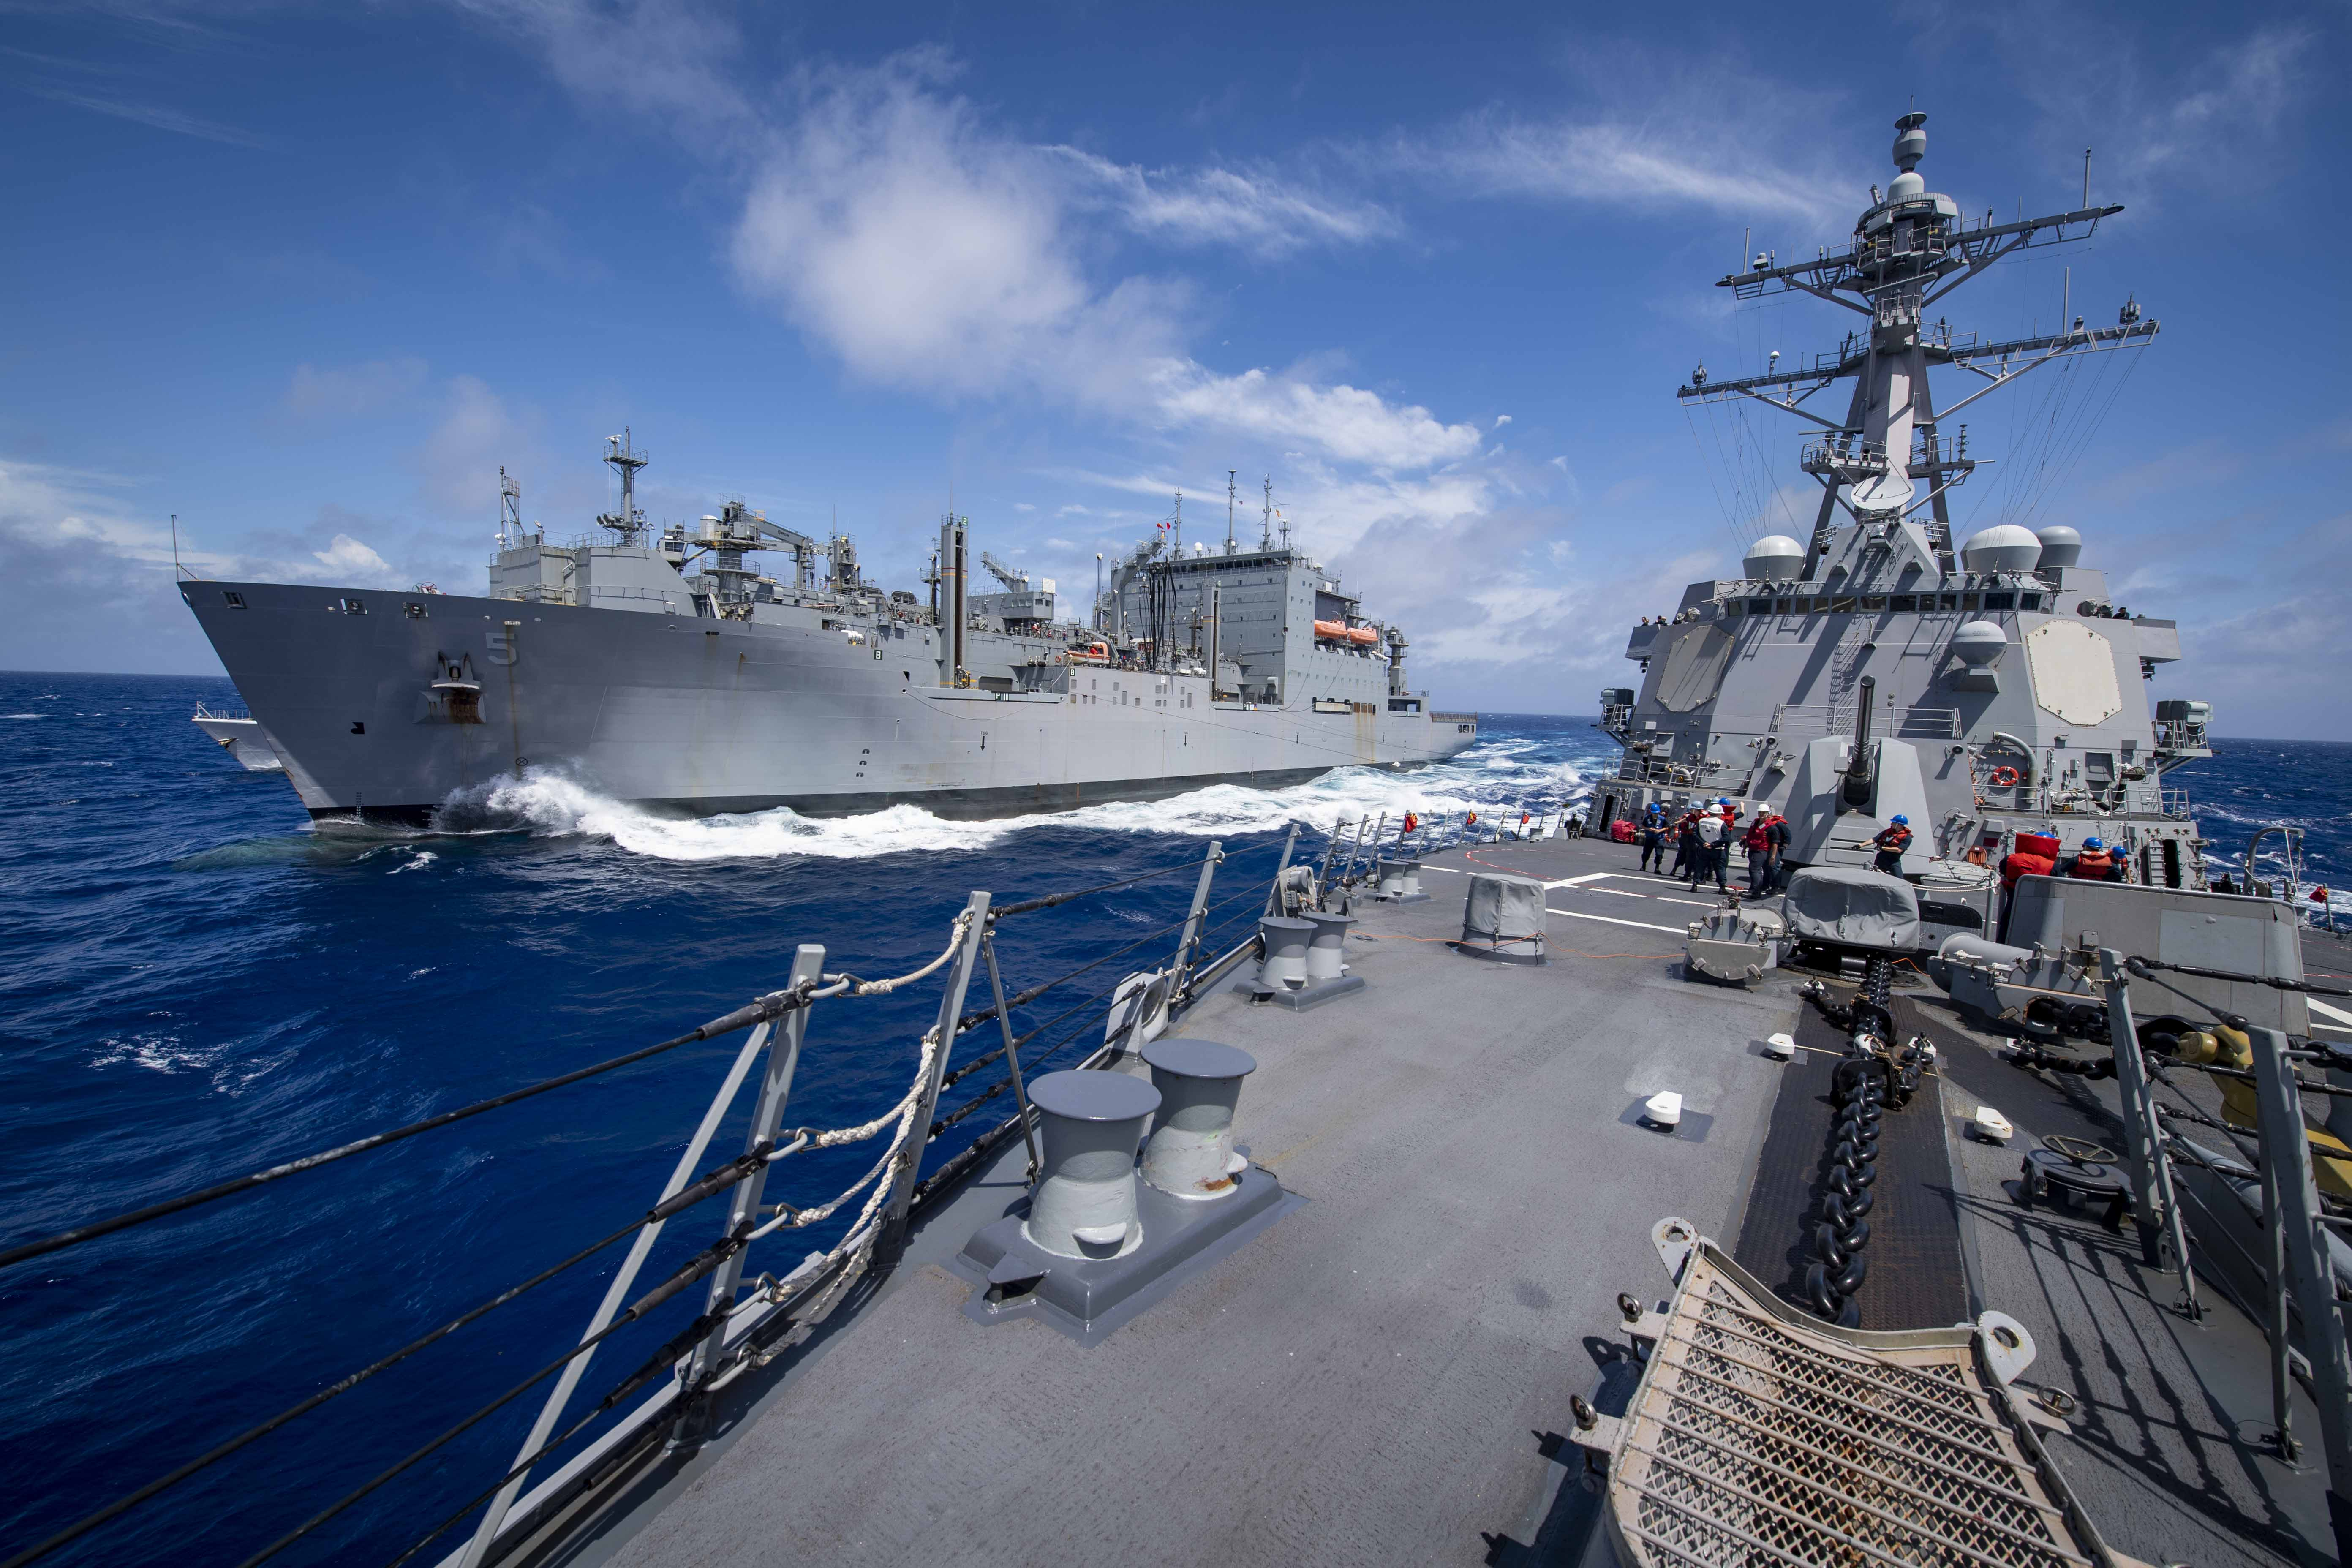 USS Gridley (DDG 101), right, steams alongside the Lewis and Clark-class dry cargo ship USNS Robert E. Peary (T-AKE 5) during a replenishment-at-sea.